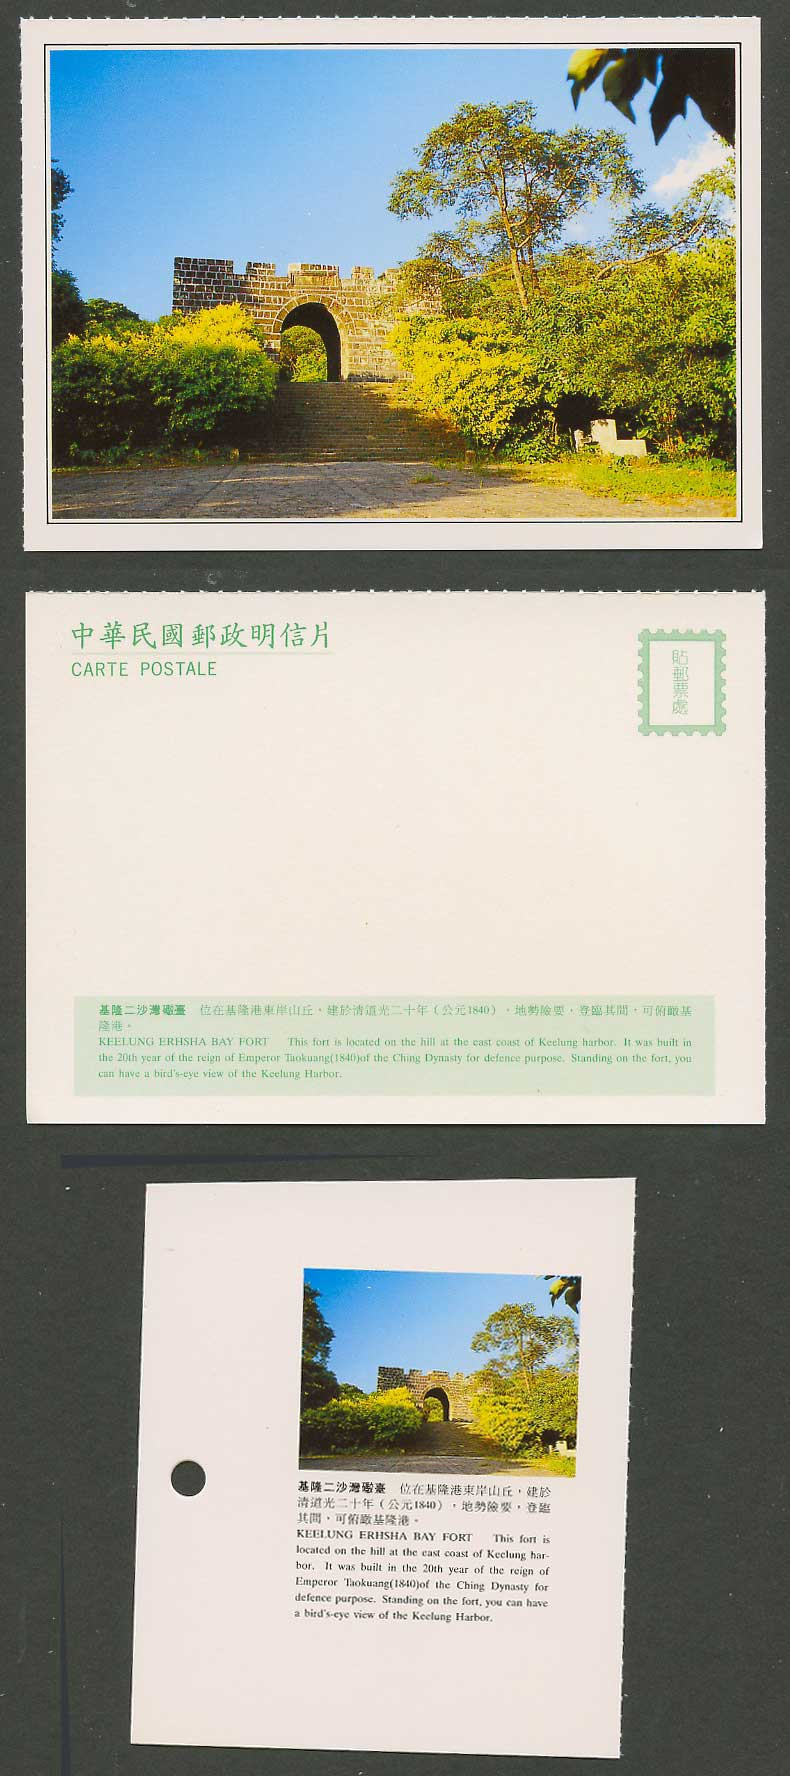 Taiwan Formosa China Postcard Keelung Erhsha Bay Fort on Hill 基隆二沙灣礮臺 位於基隆港東岸山丘